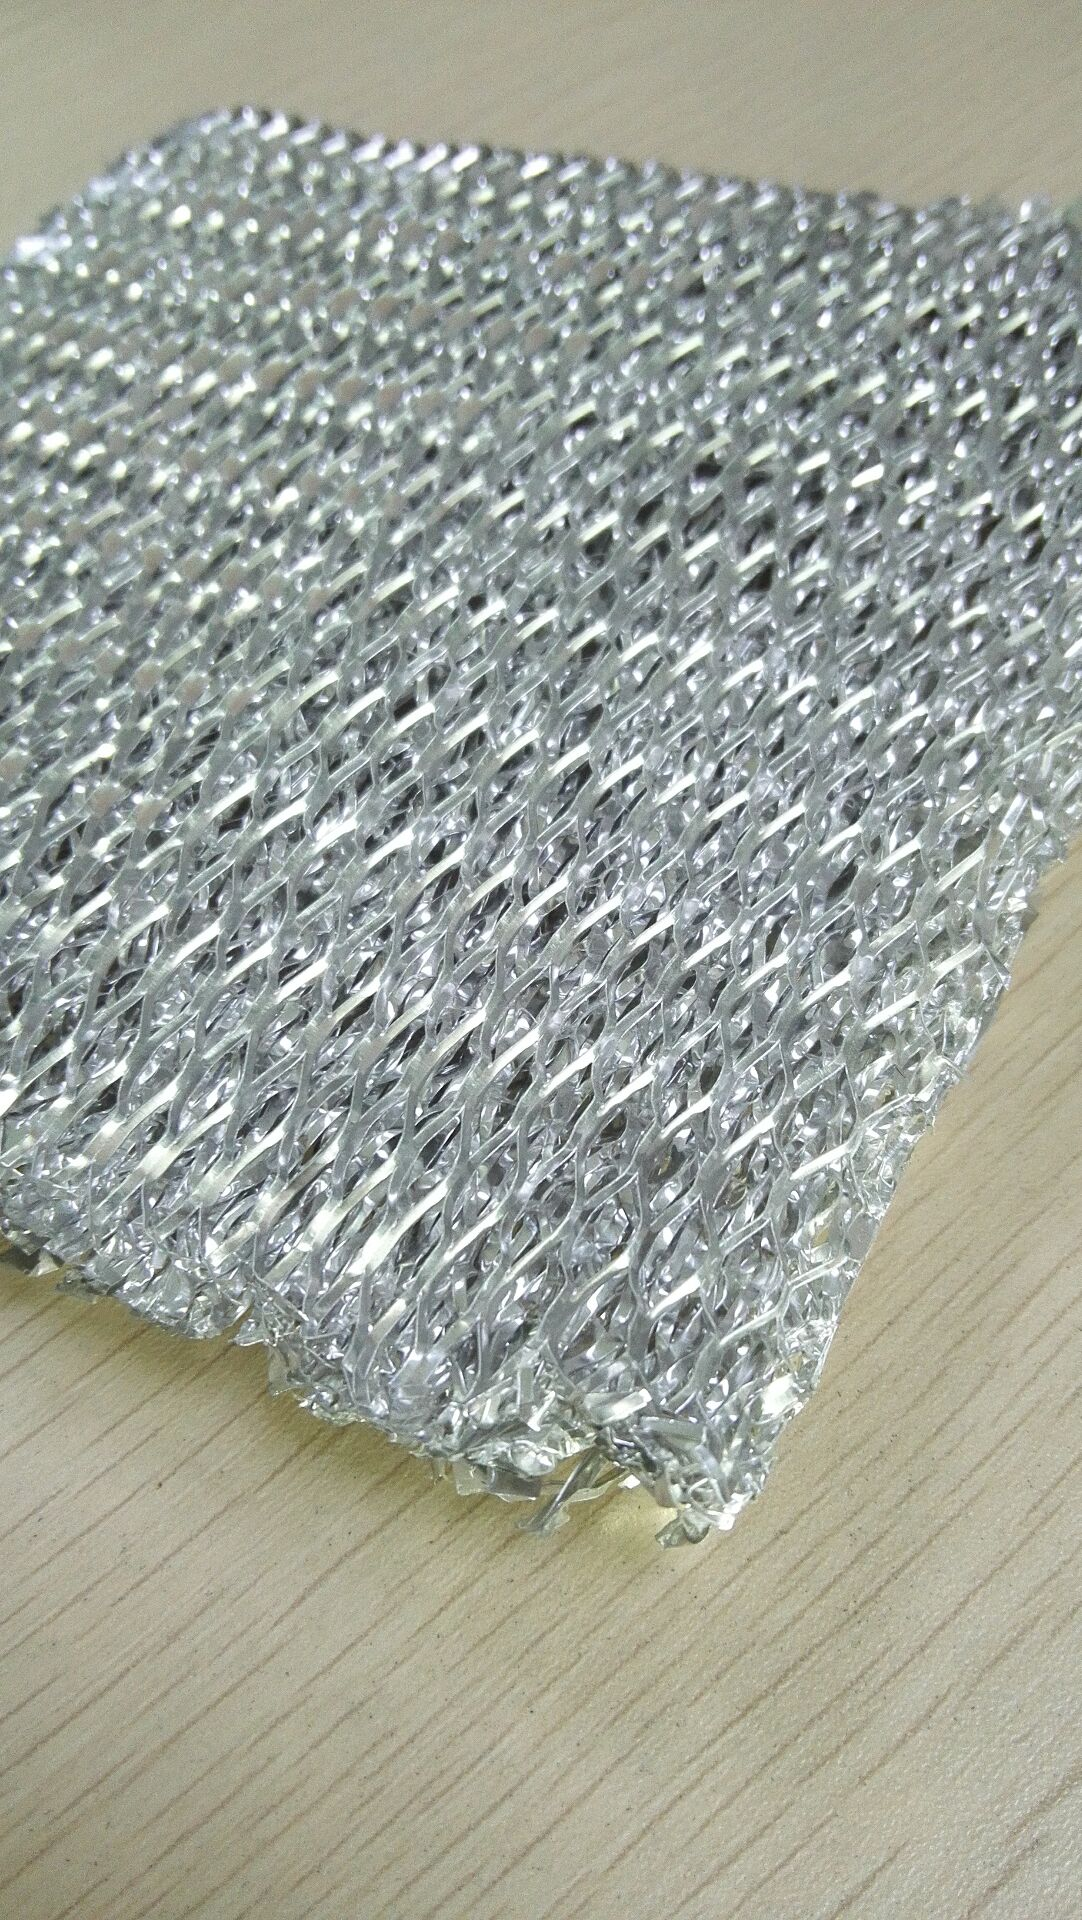 0.75mm Aluminum Foil Expanded Mesh. stretch metal mesh for filter